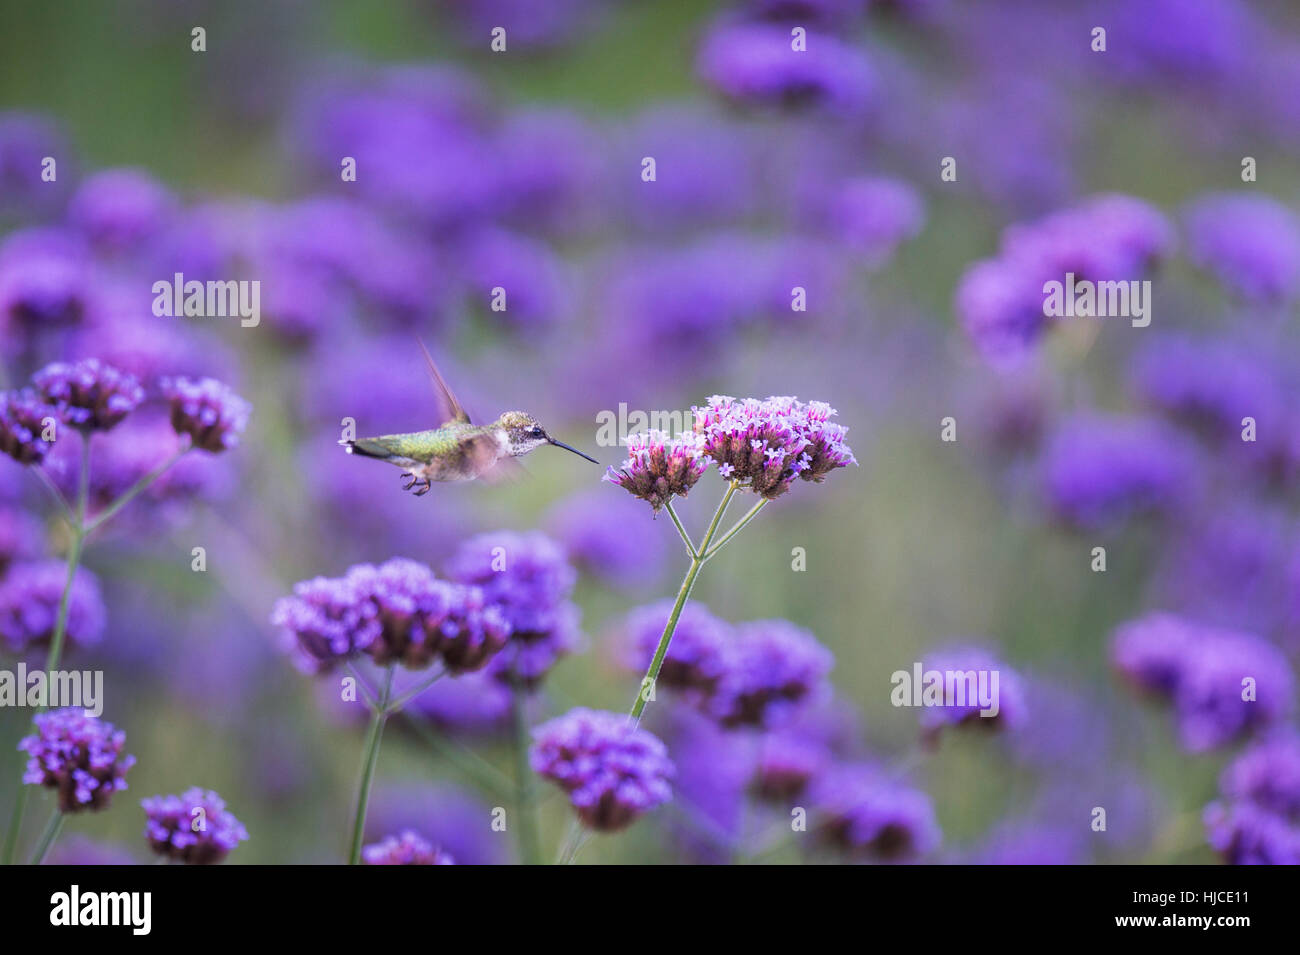 A Ruby-throated Hummingbird hovers in front of a bright purple flower in a garden filled with flowers. - Stock Image